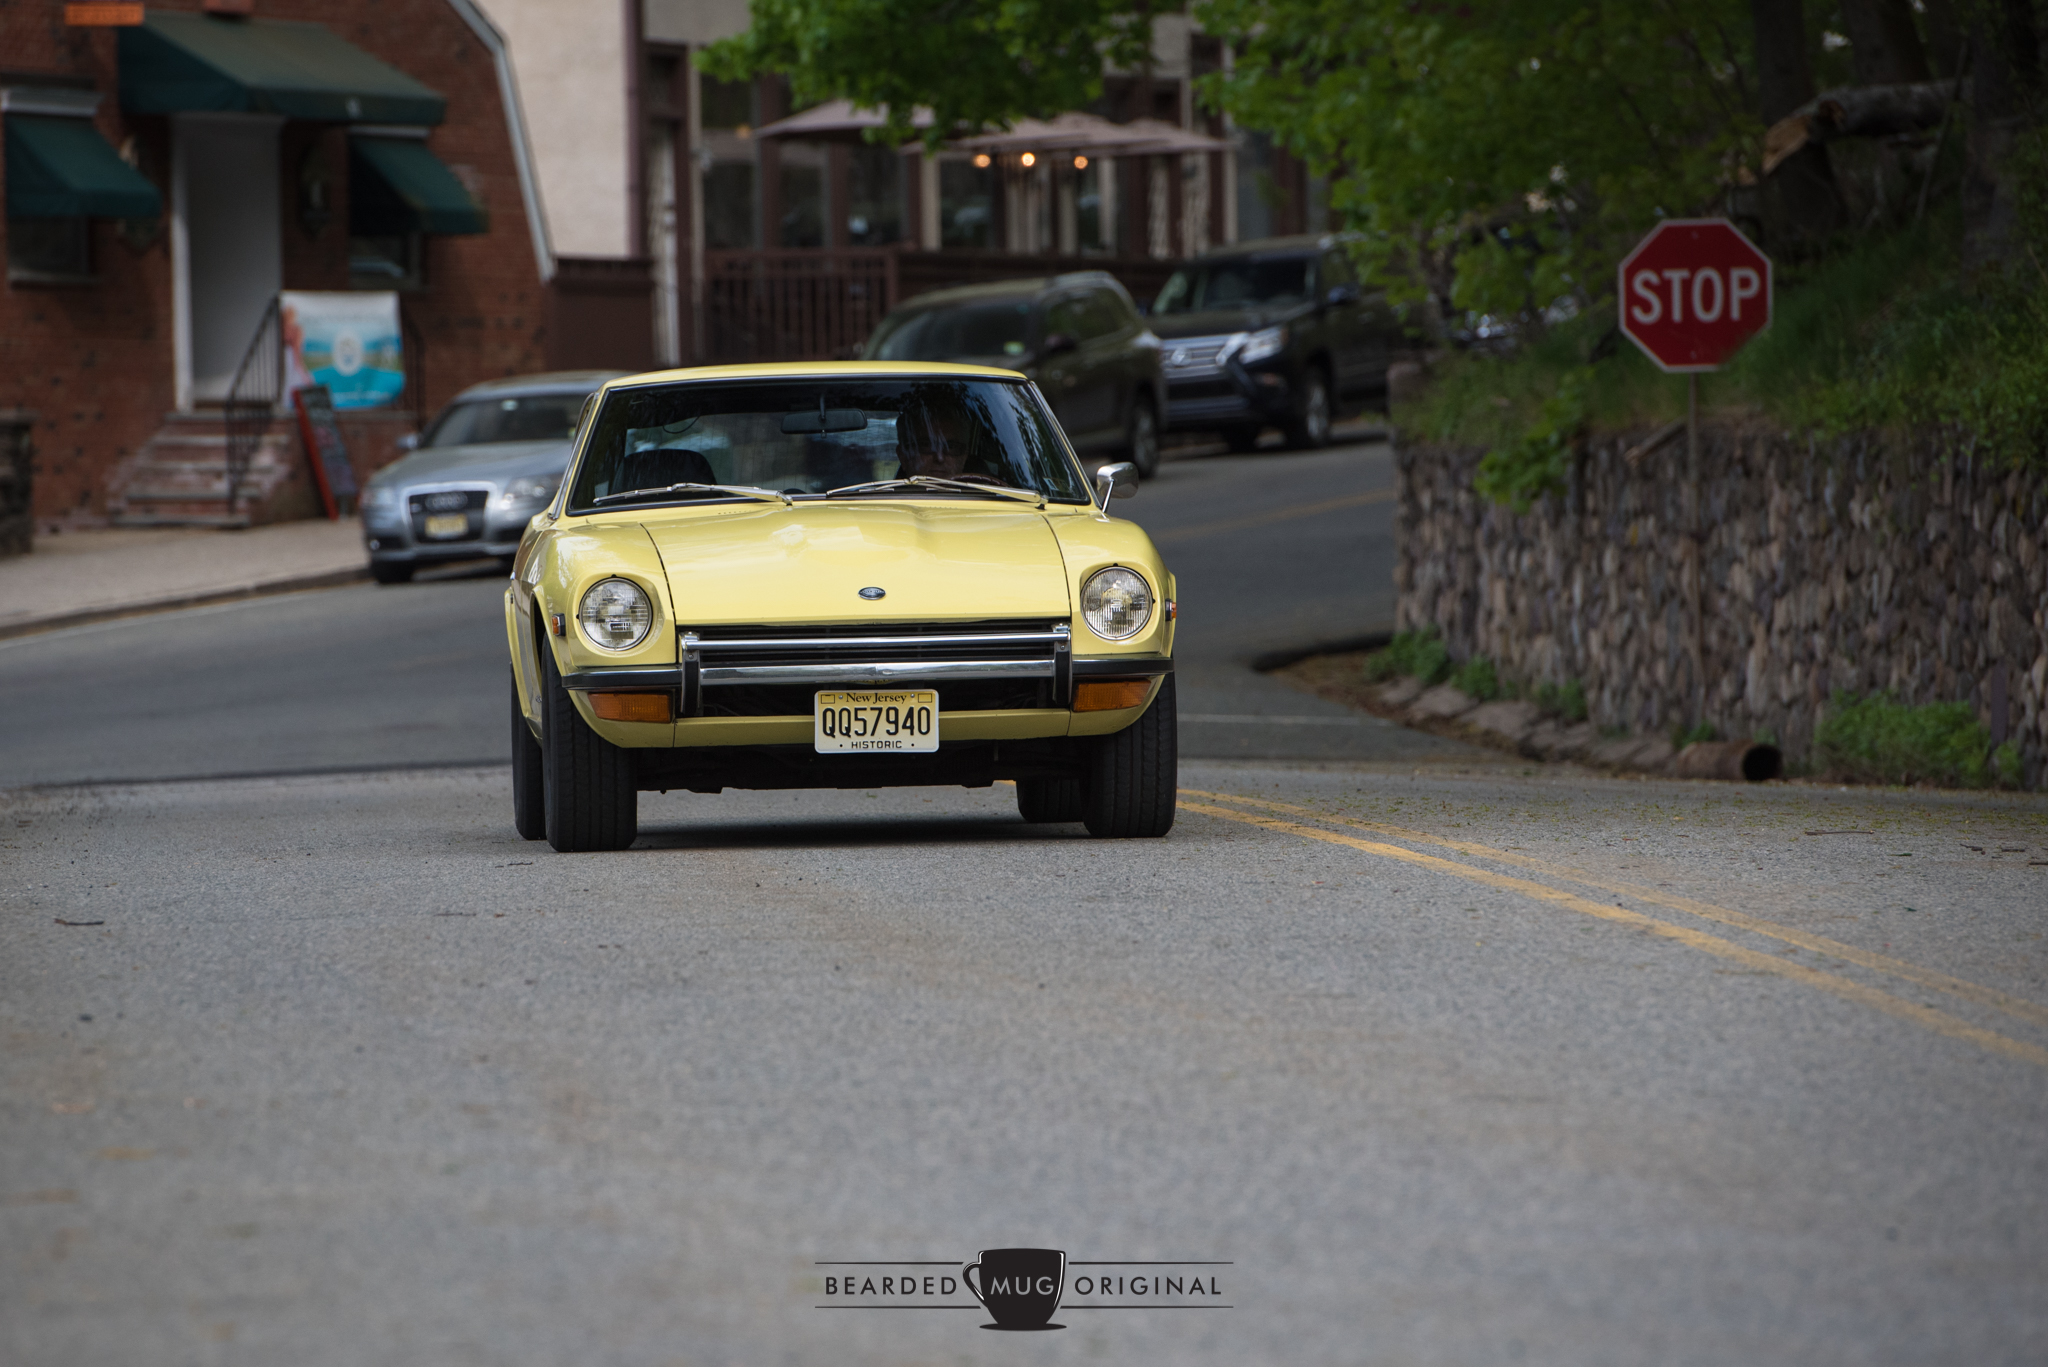 Datsuns ruled the day.